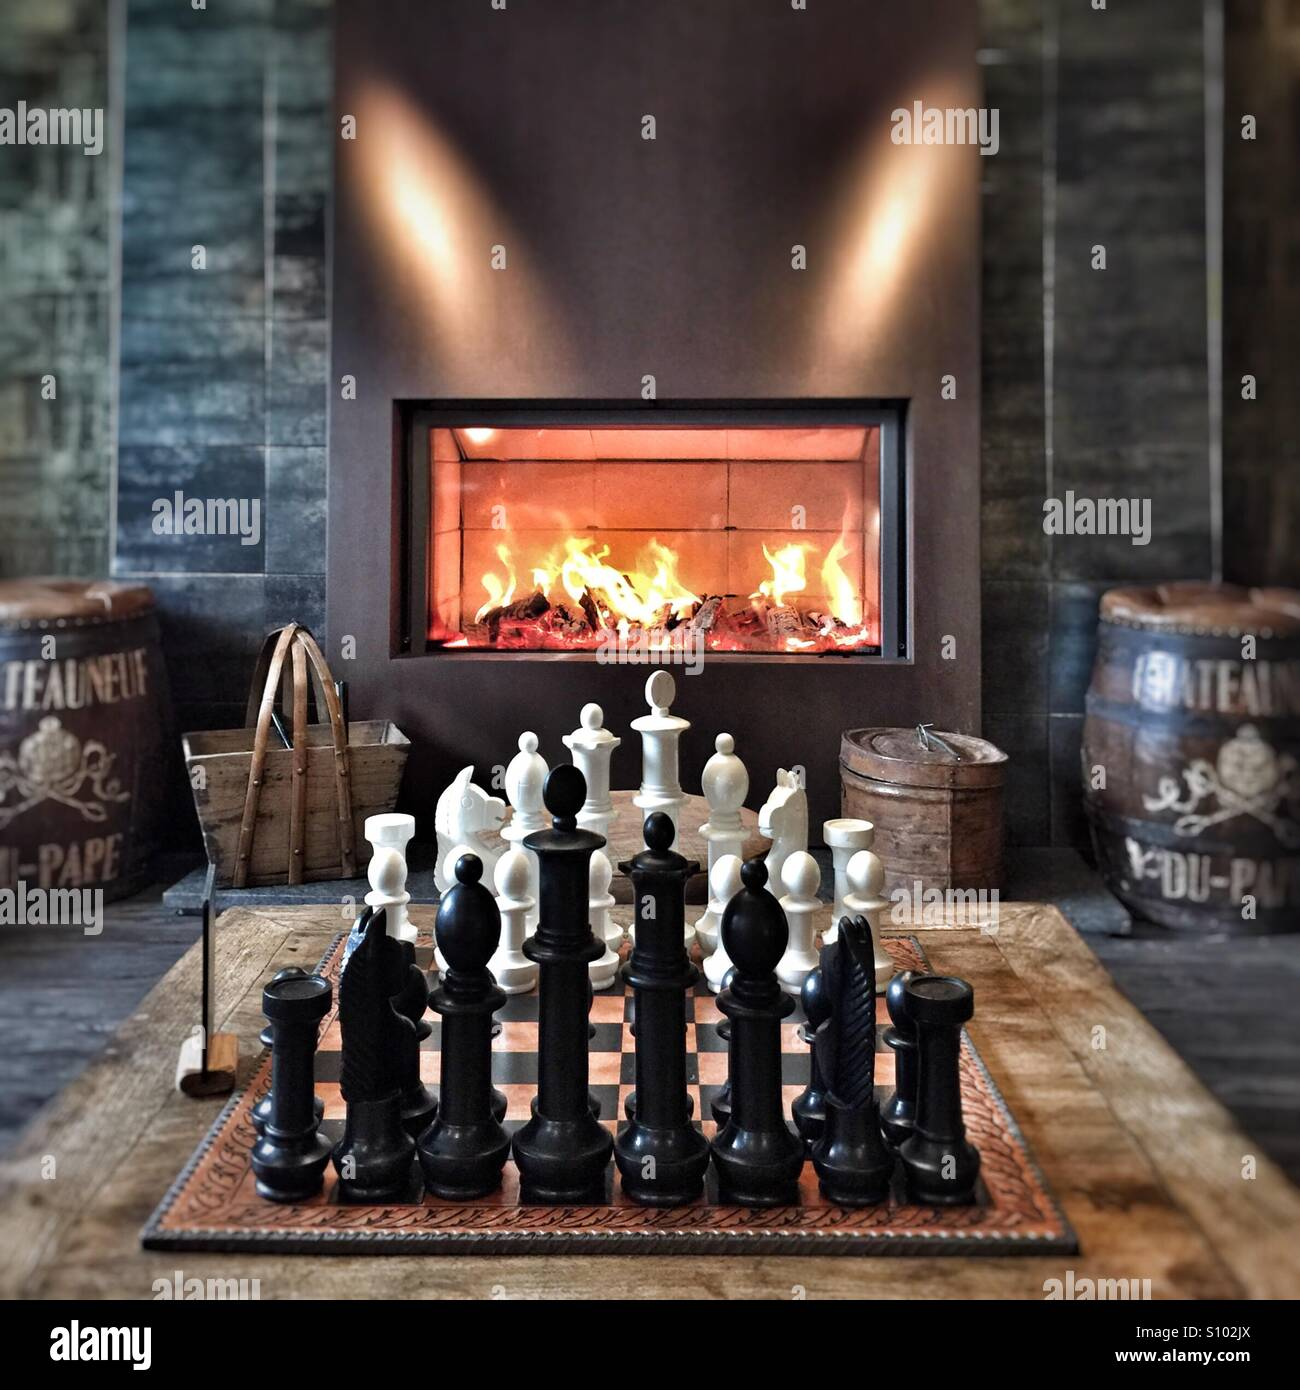 Game of chess in front of cosy fire in pub Stock Photo